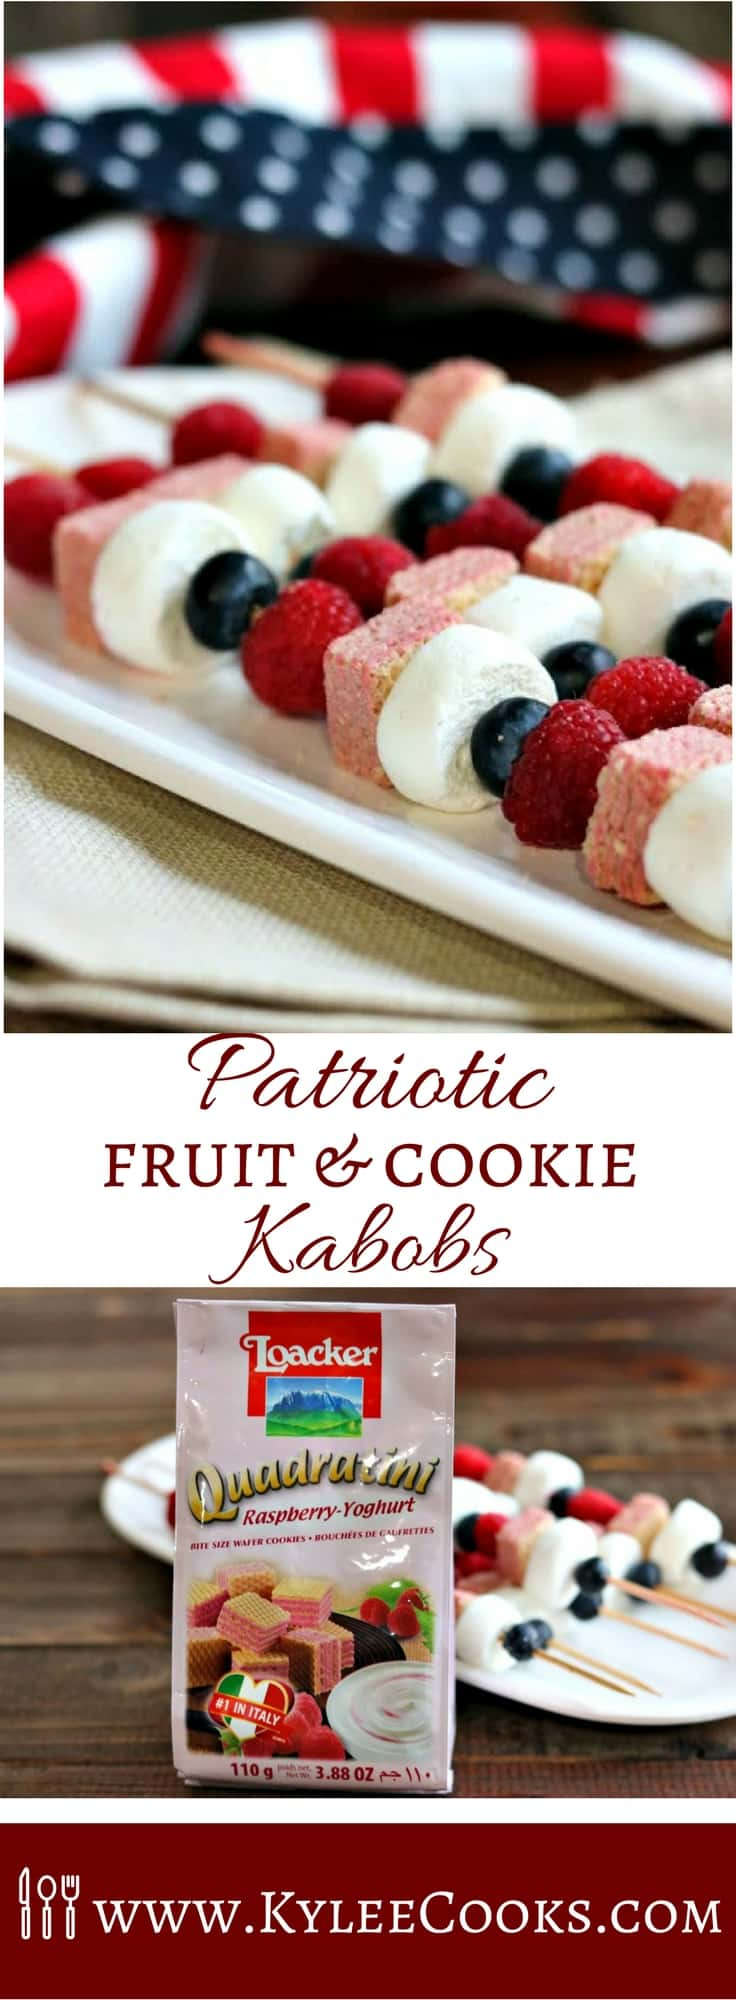 Make these super cute fruit & cookie kabobs for #4thJuly celebrations! #redwhiteblue